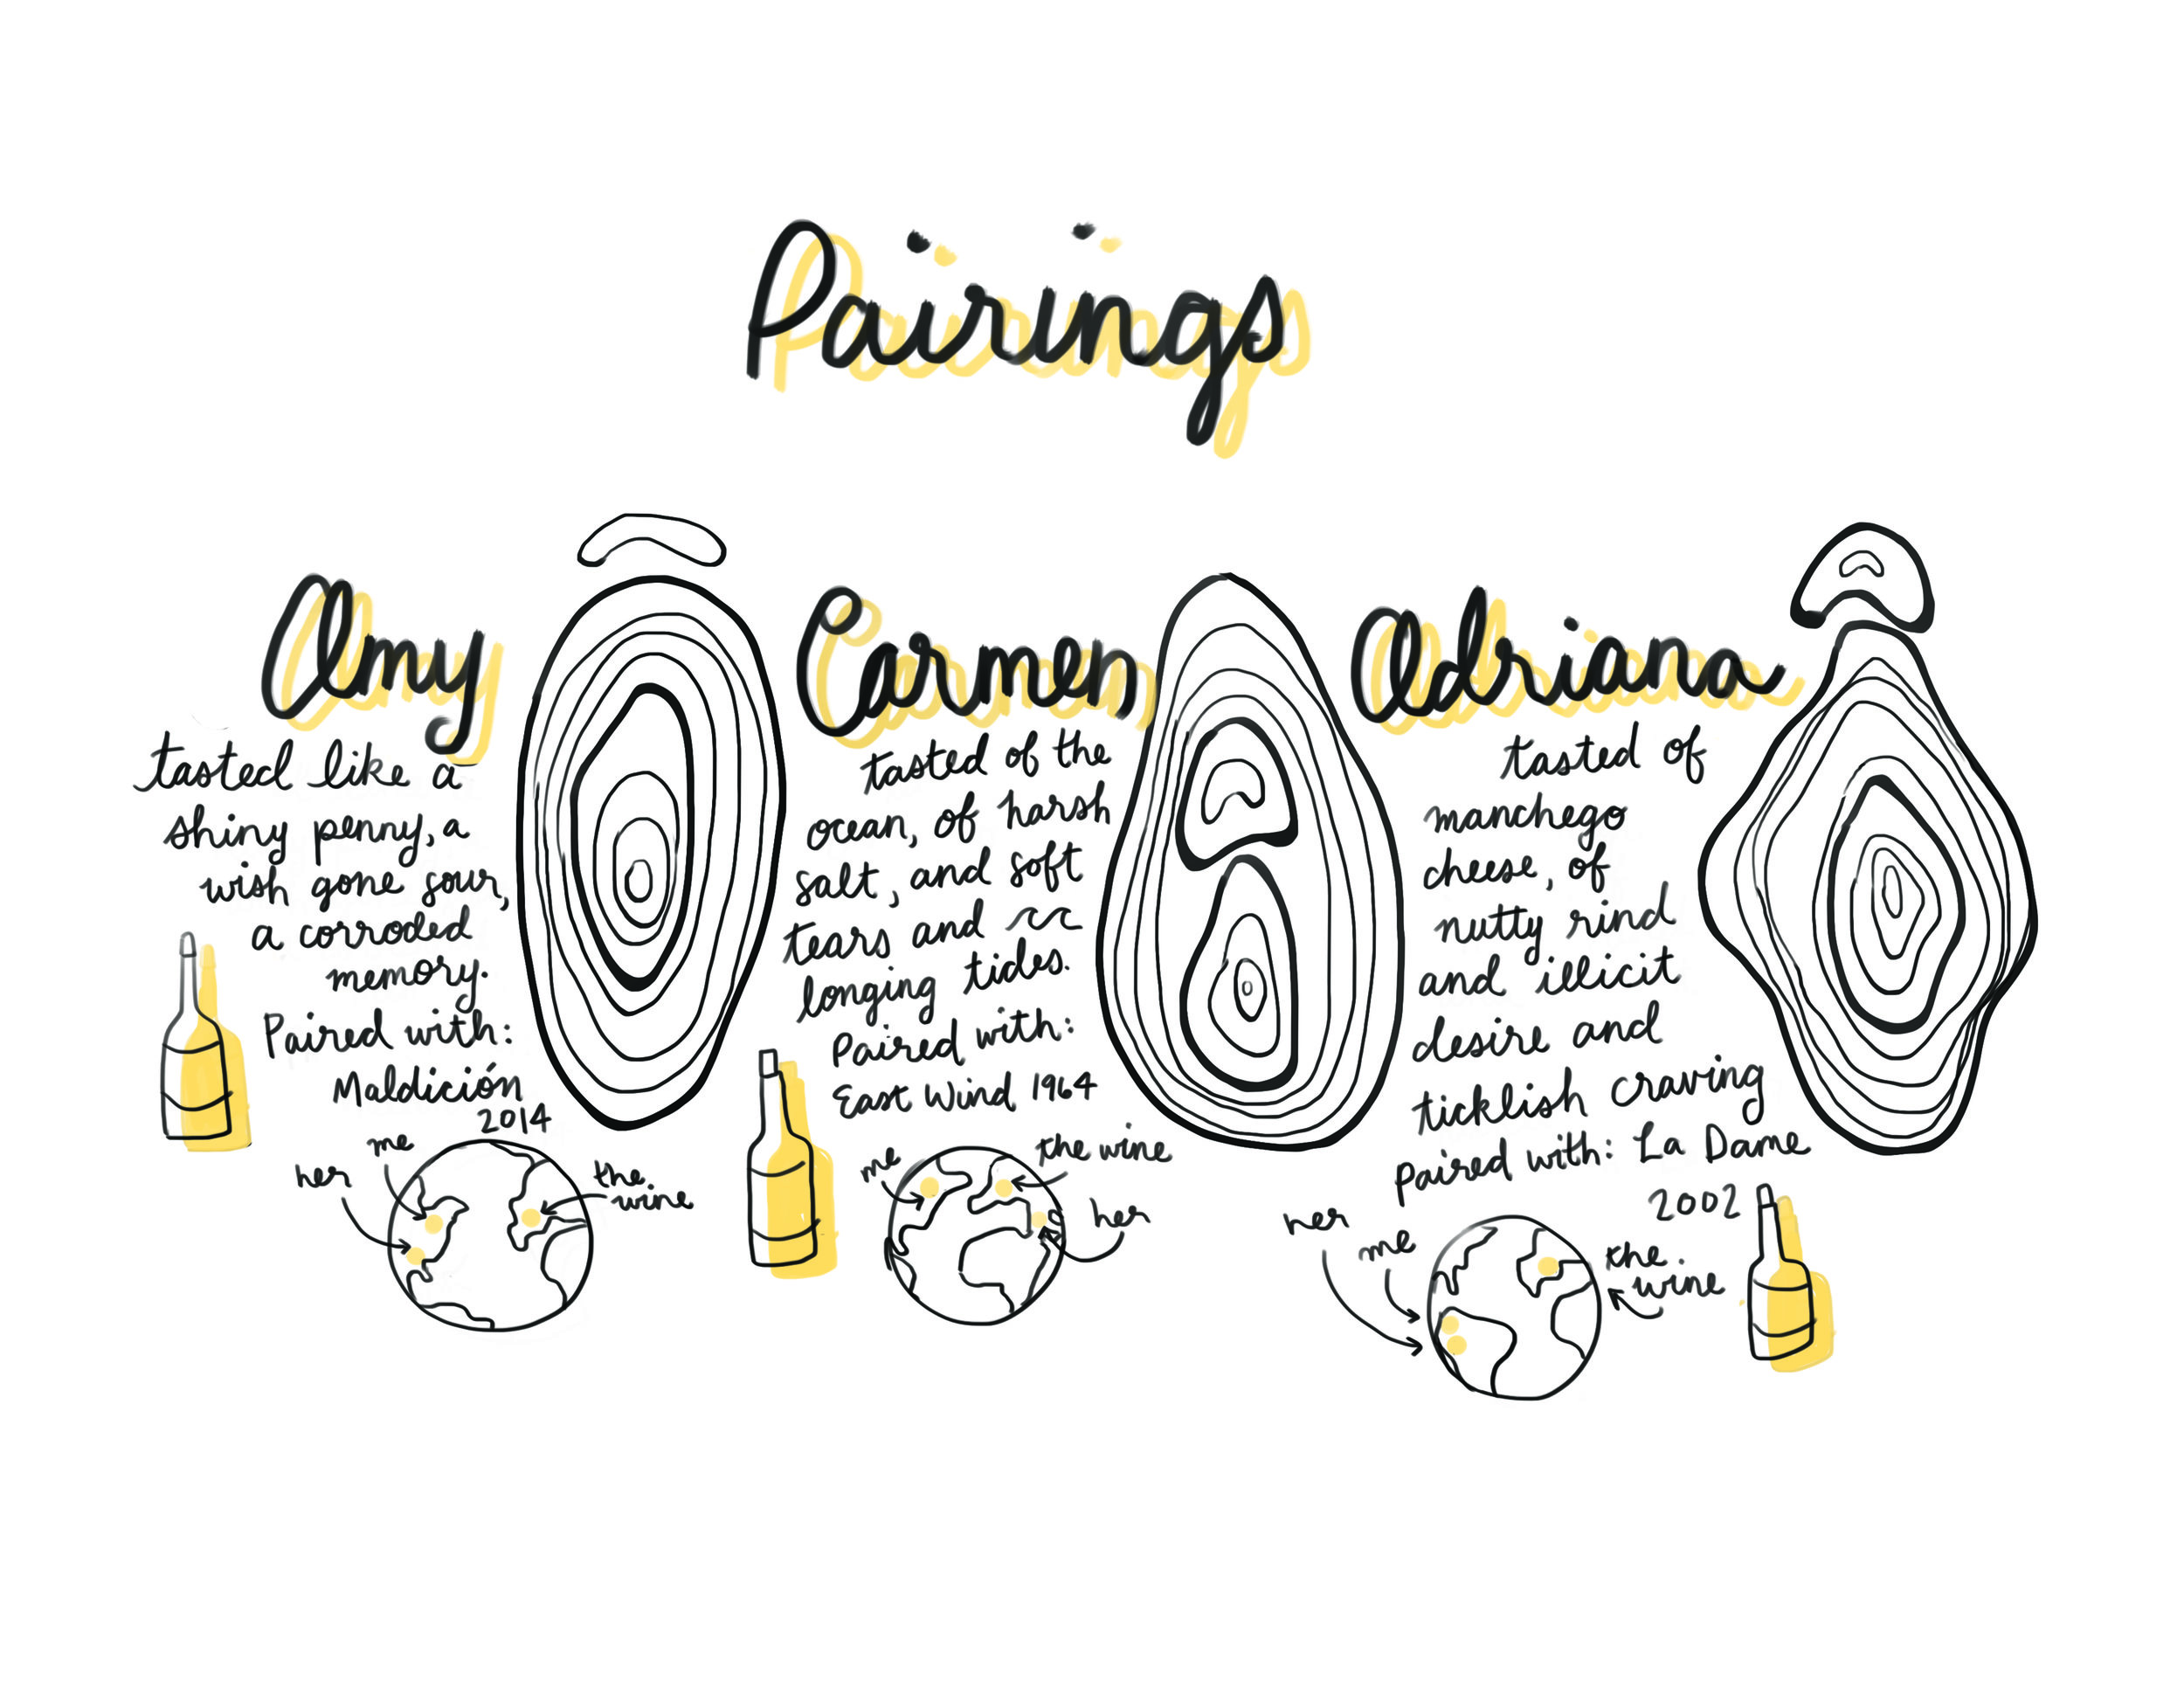 And, if you made it this far, topographical maps of vaginas and their respective wine pairings.